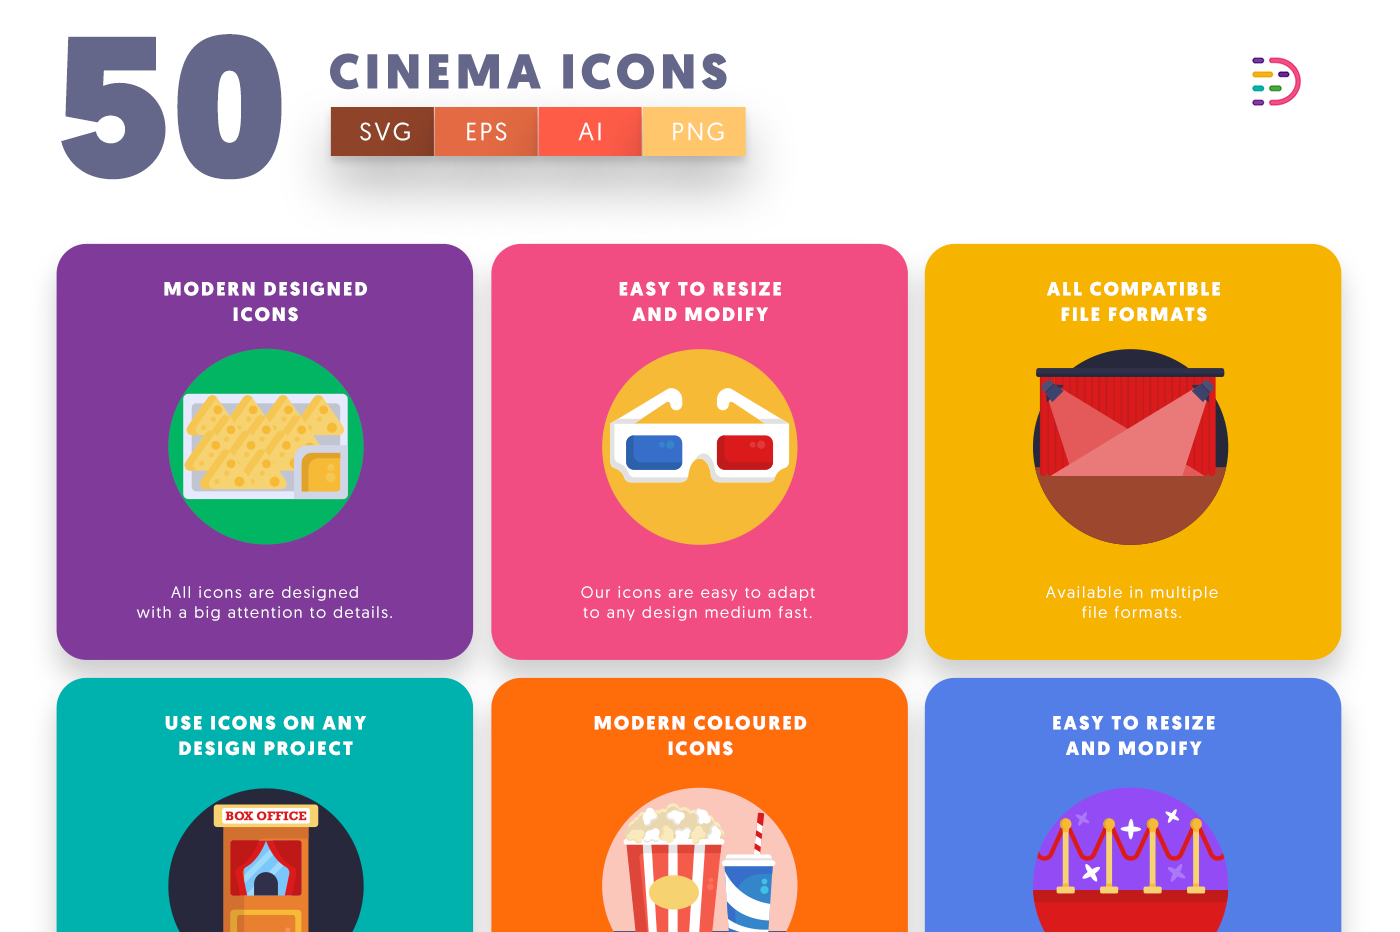 50 Cinema Icons with colored backgrounds